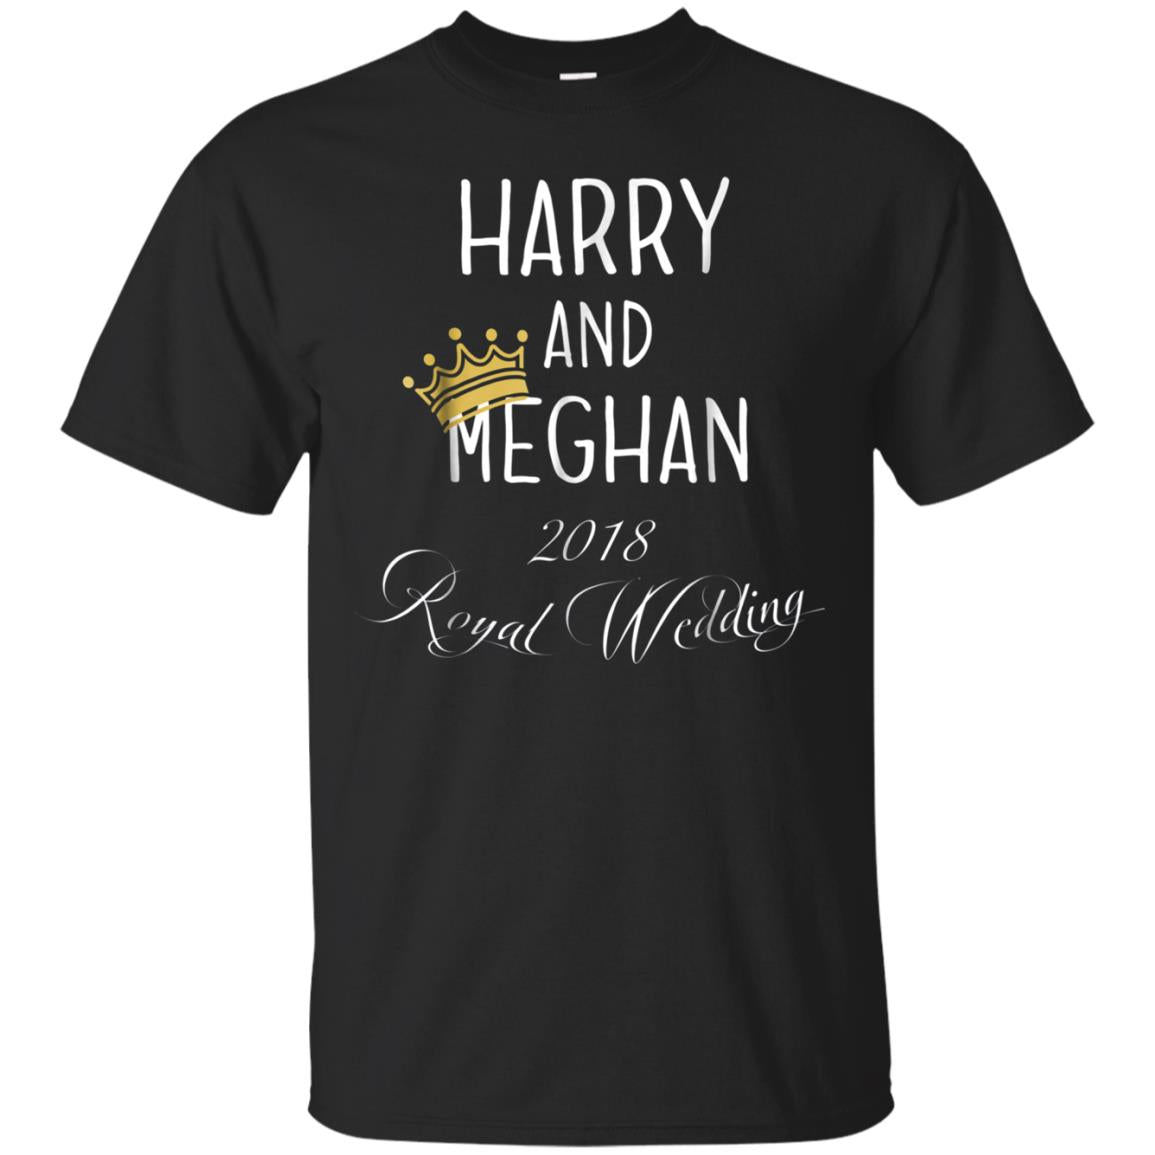 Harry and Meghan British Royal Wedding 2018 Shirt